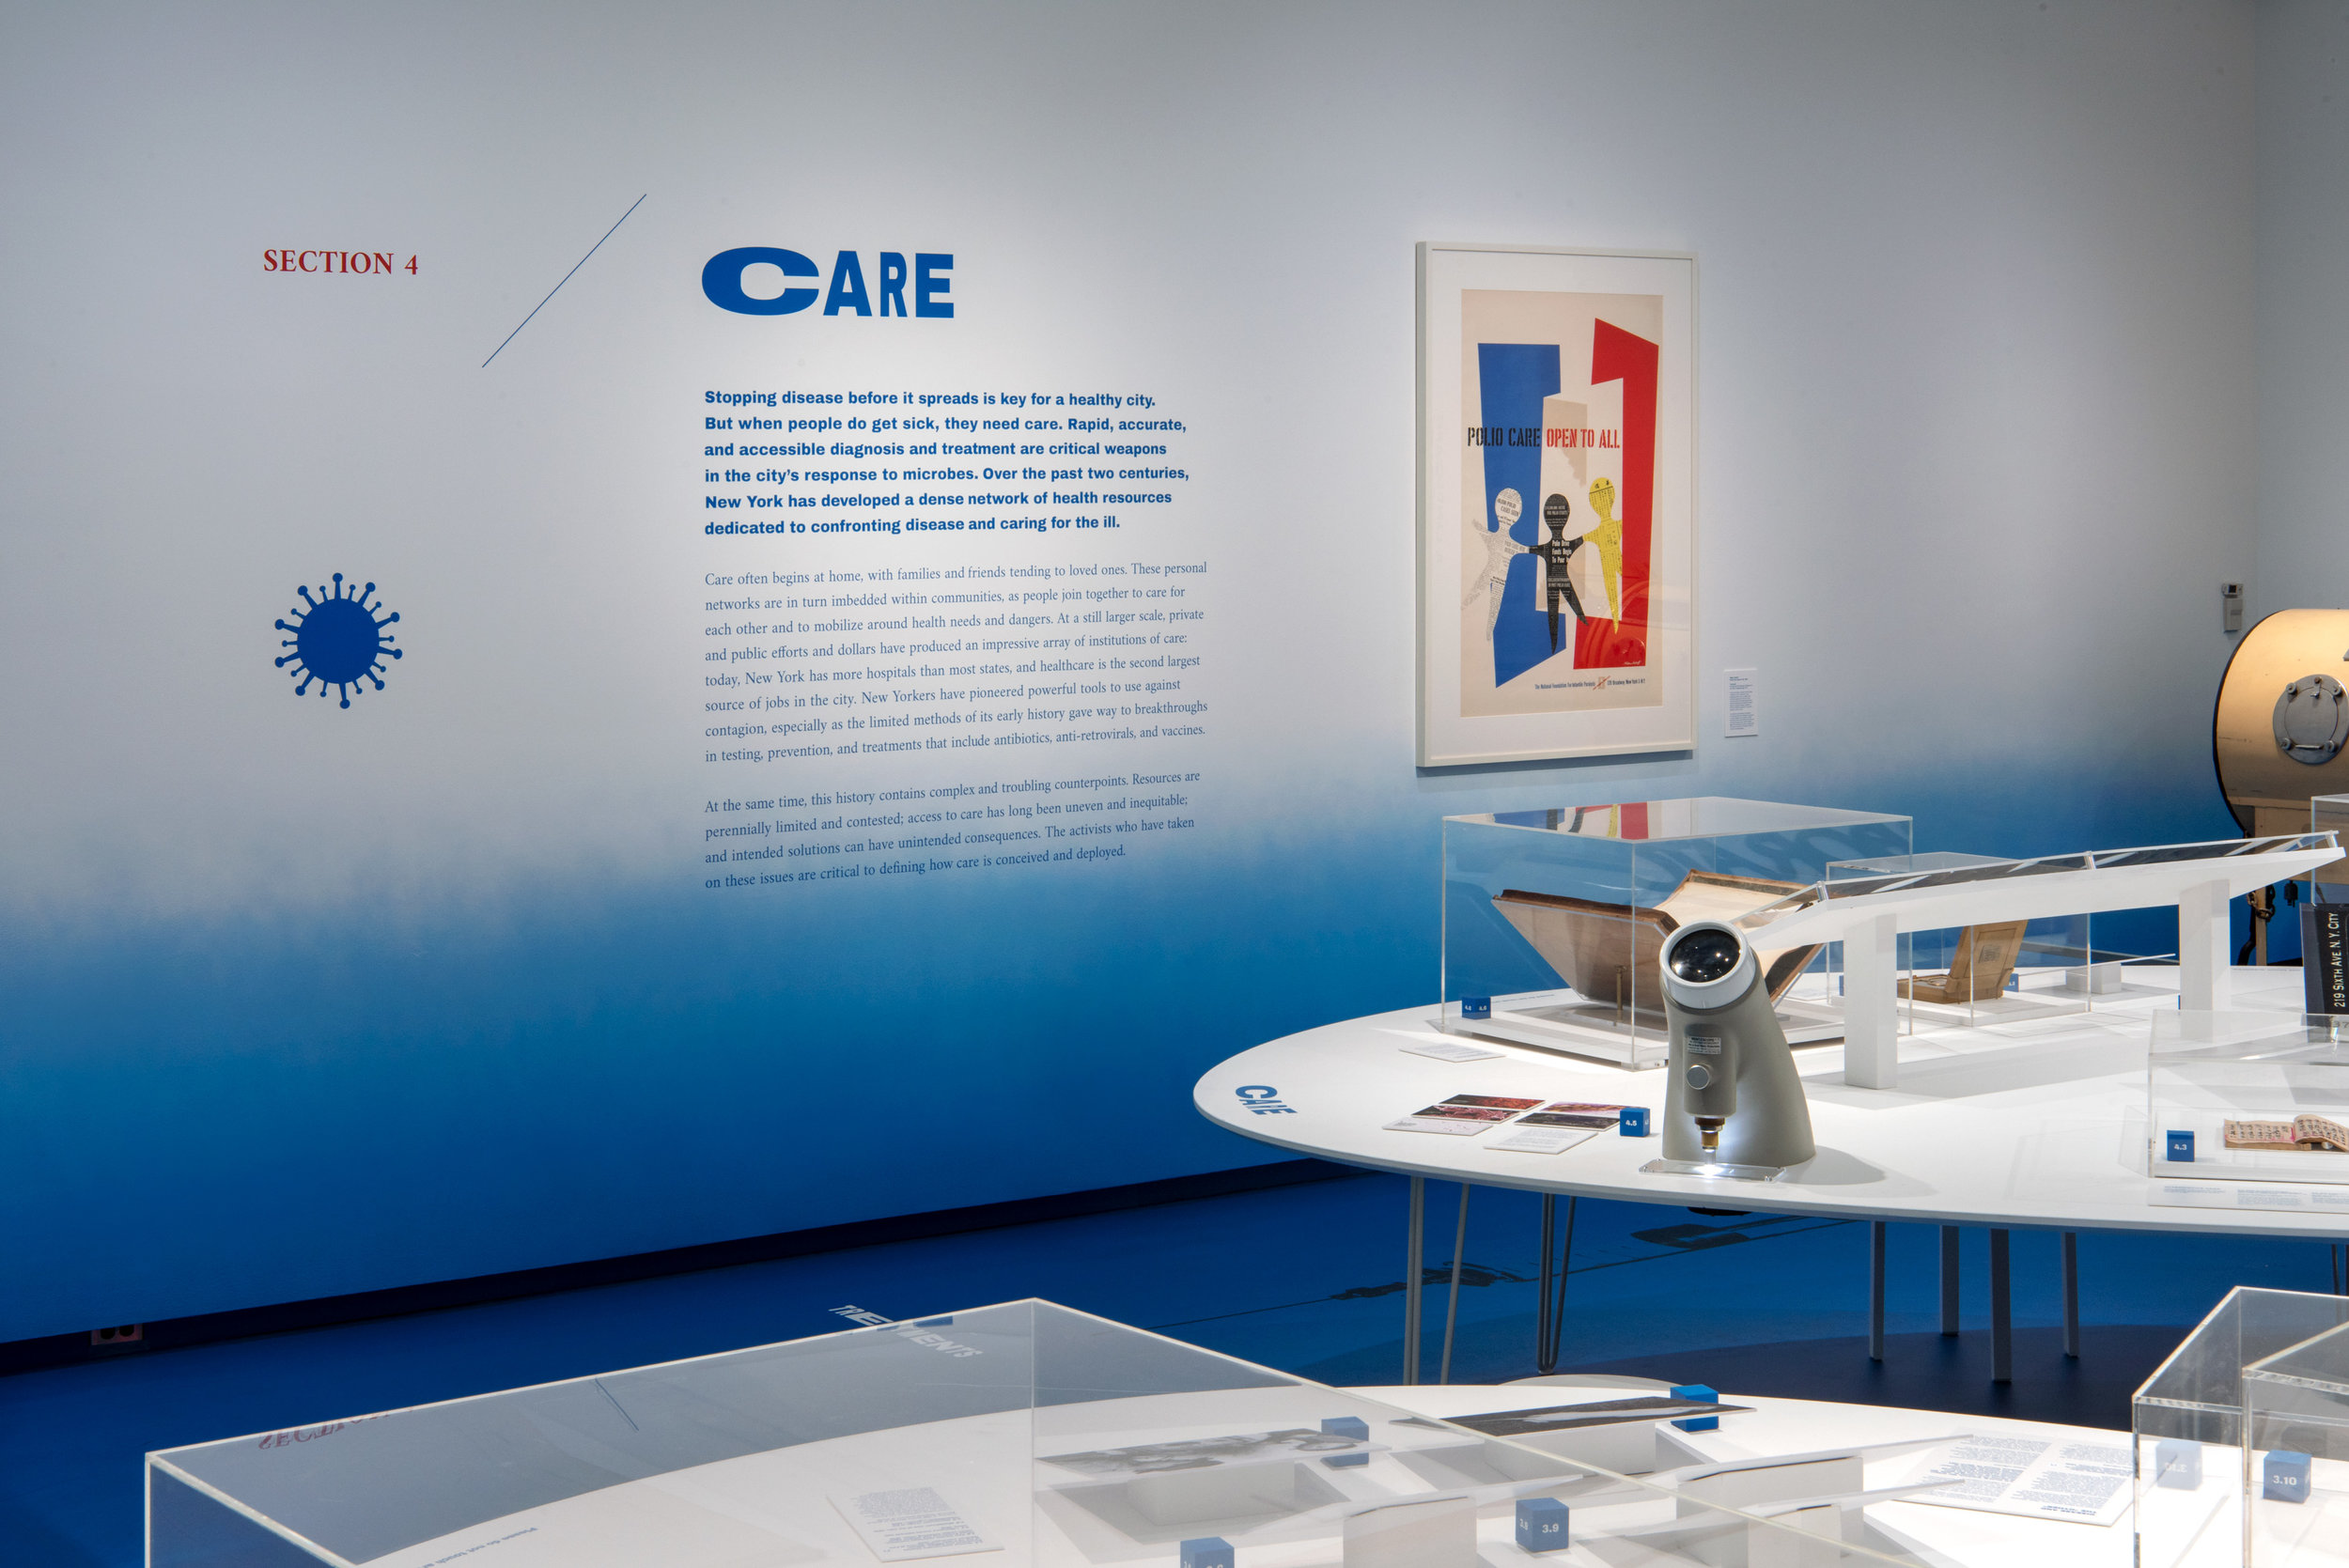 Polio Care Open to All , Milton Ackoff, The Museum of Modern Art. Anonymous gift, 1979.